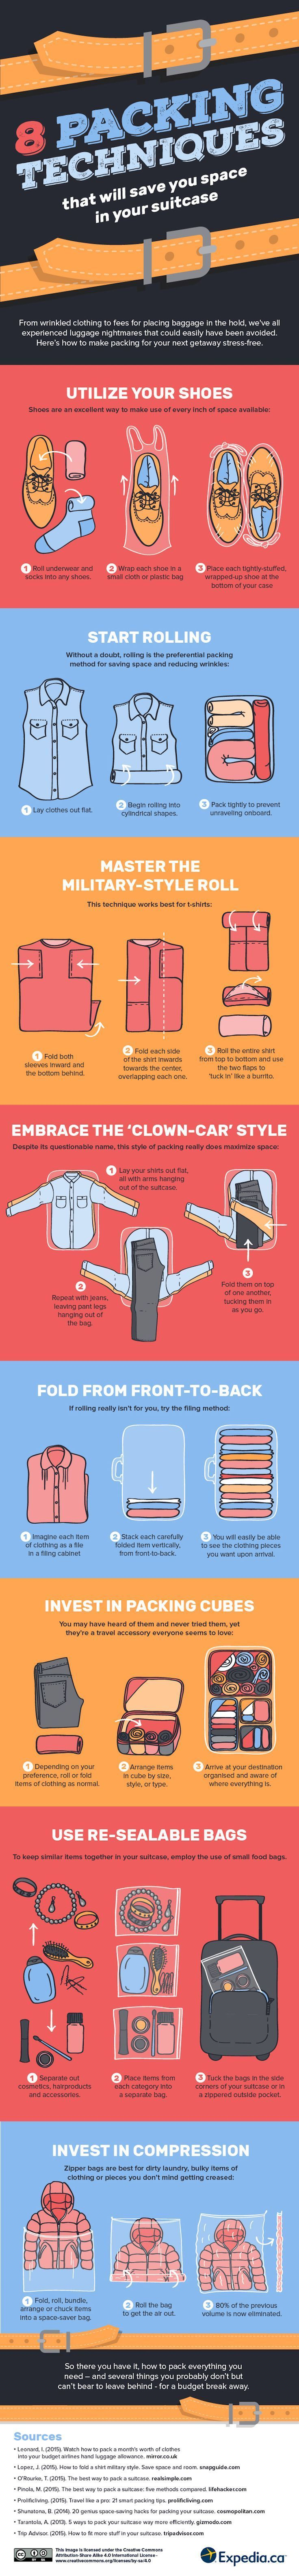 Best Pack A Suitcase Ideas On Pinterest Packing A Suitcase - Simple trick changes everything knew packing t shirts just brilliant